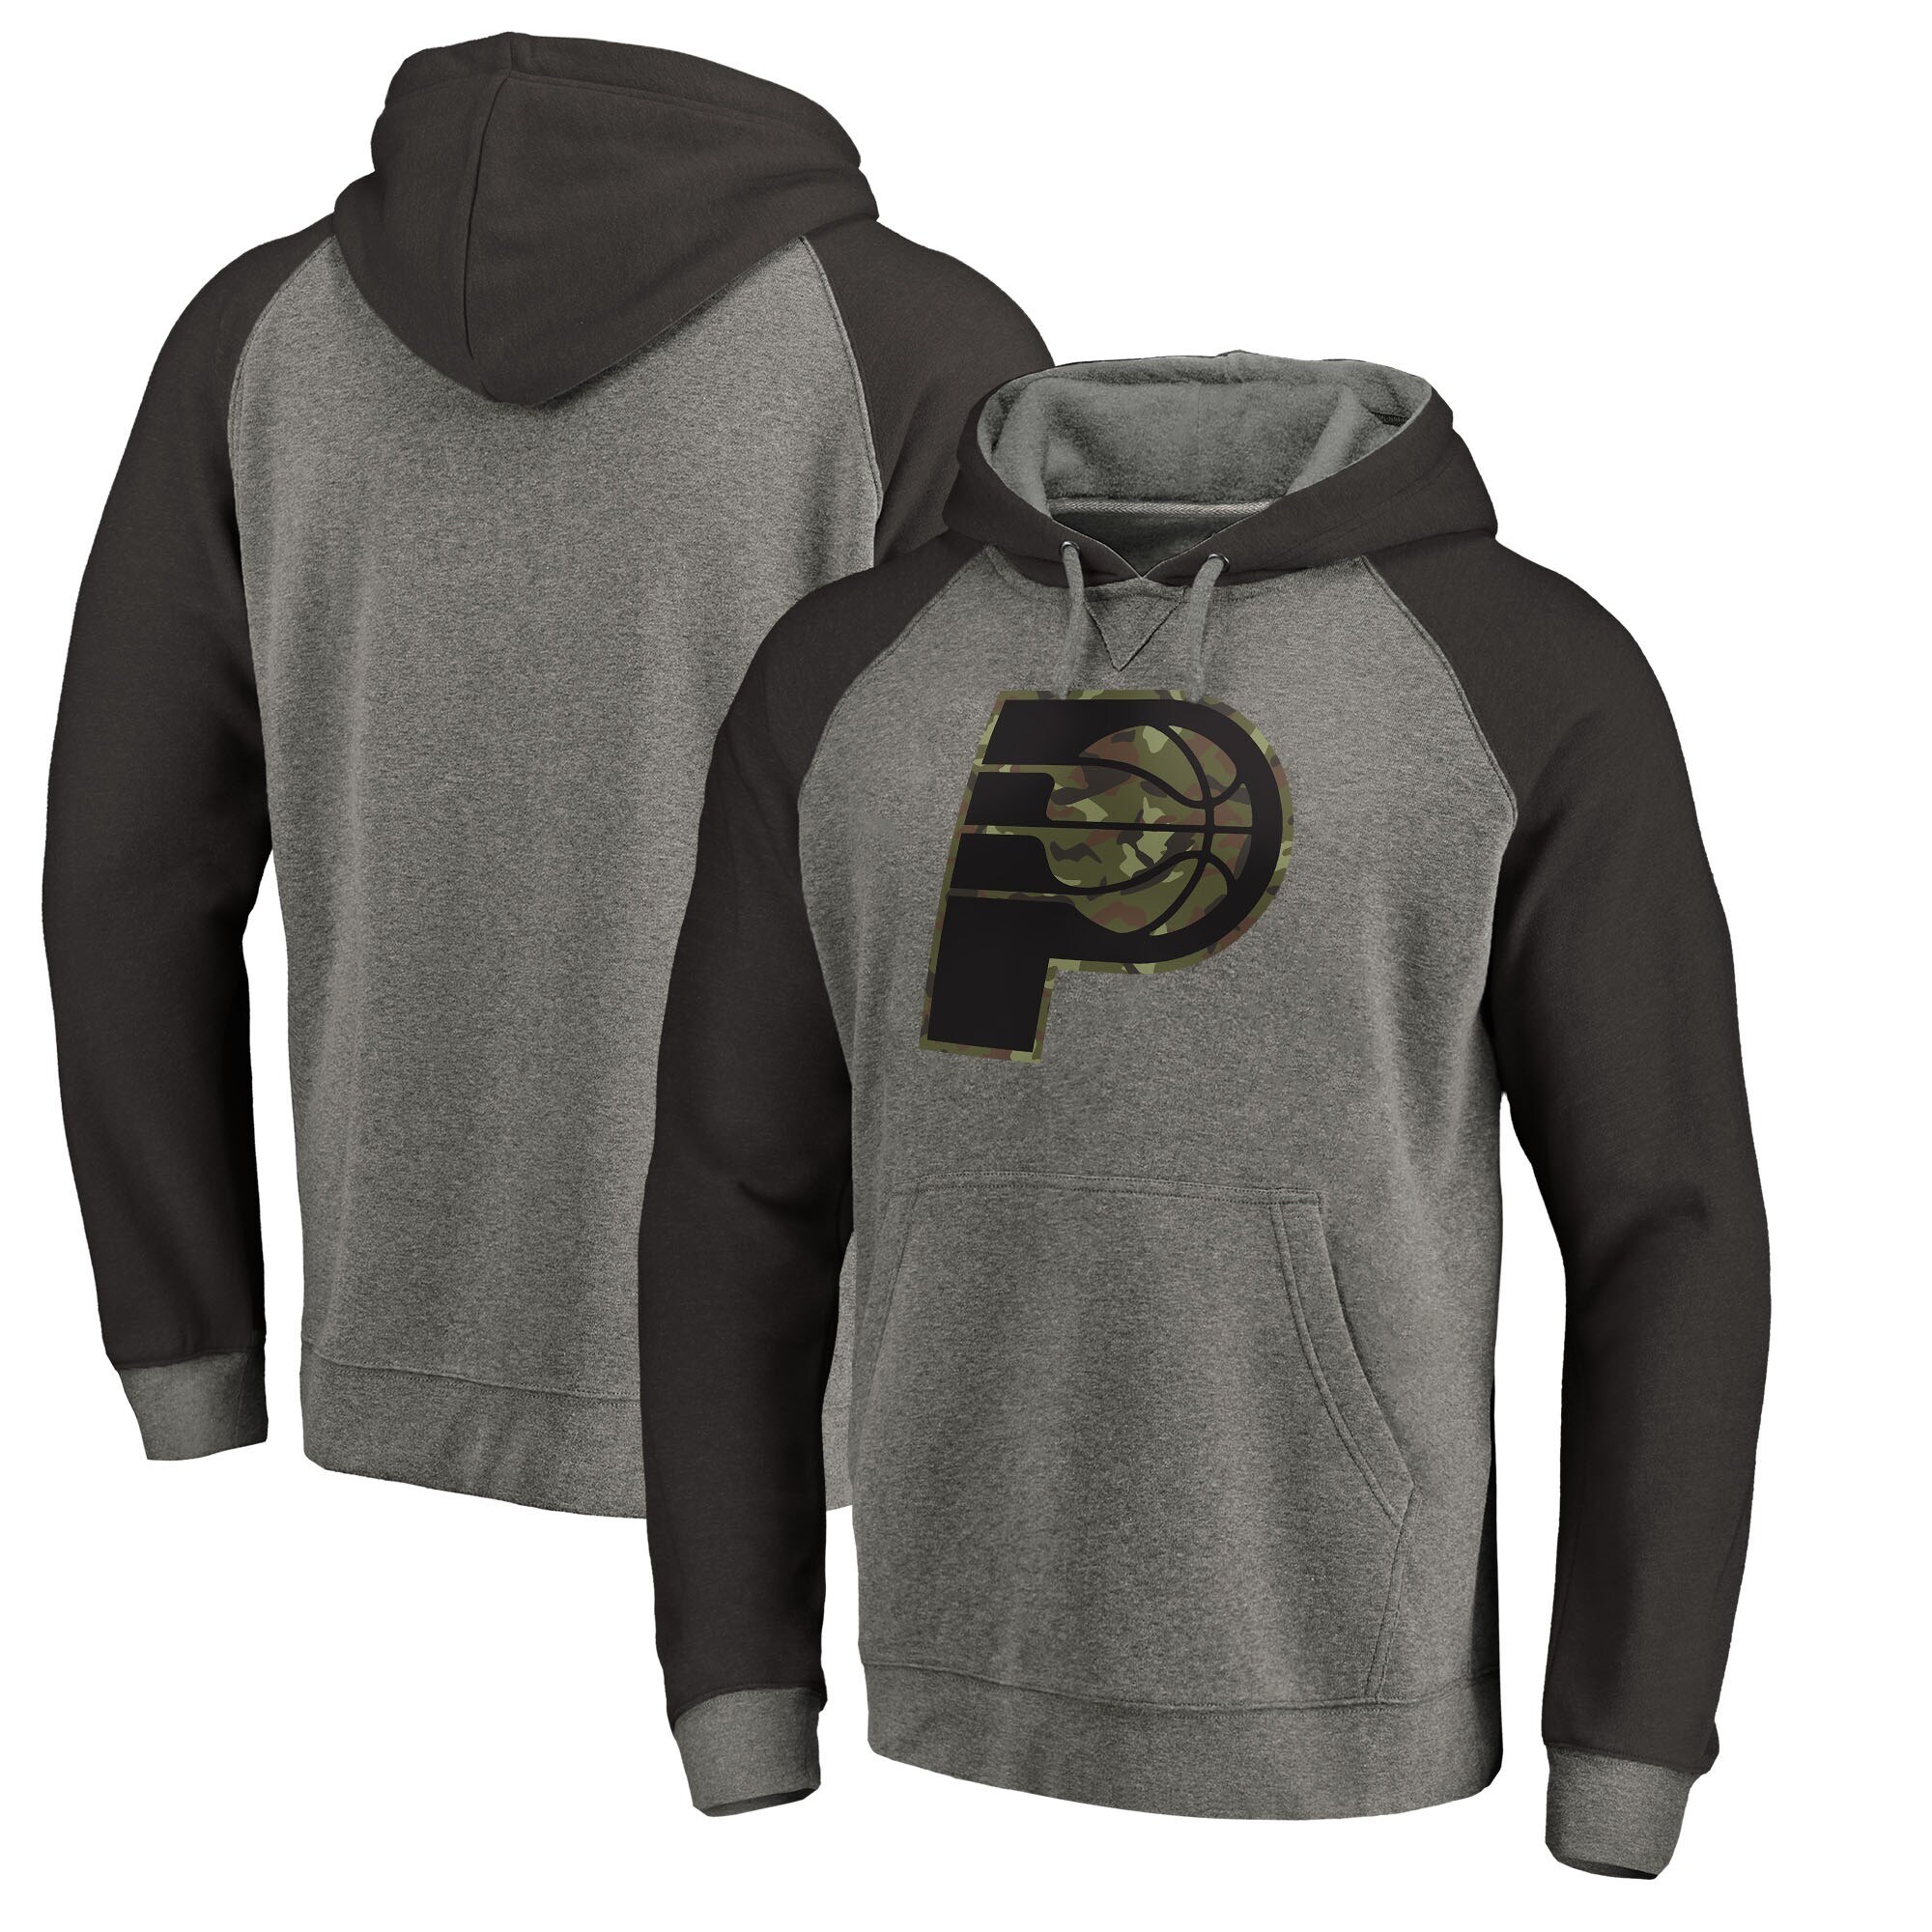 Indiana Pacers Fanatics Branded Prestige Camo Tri-Blend Pullover Hoodie - Heathered Gray